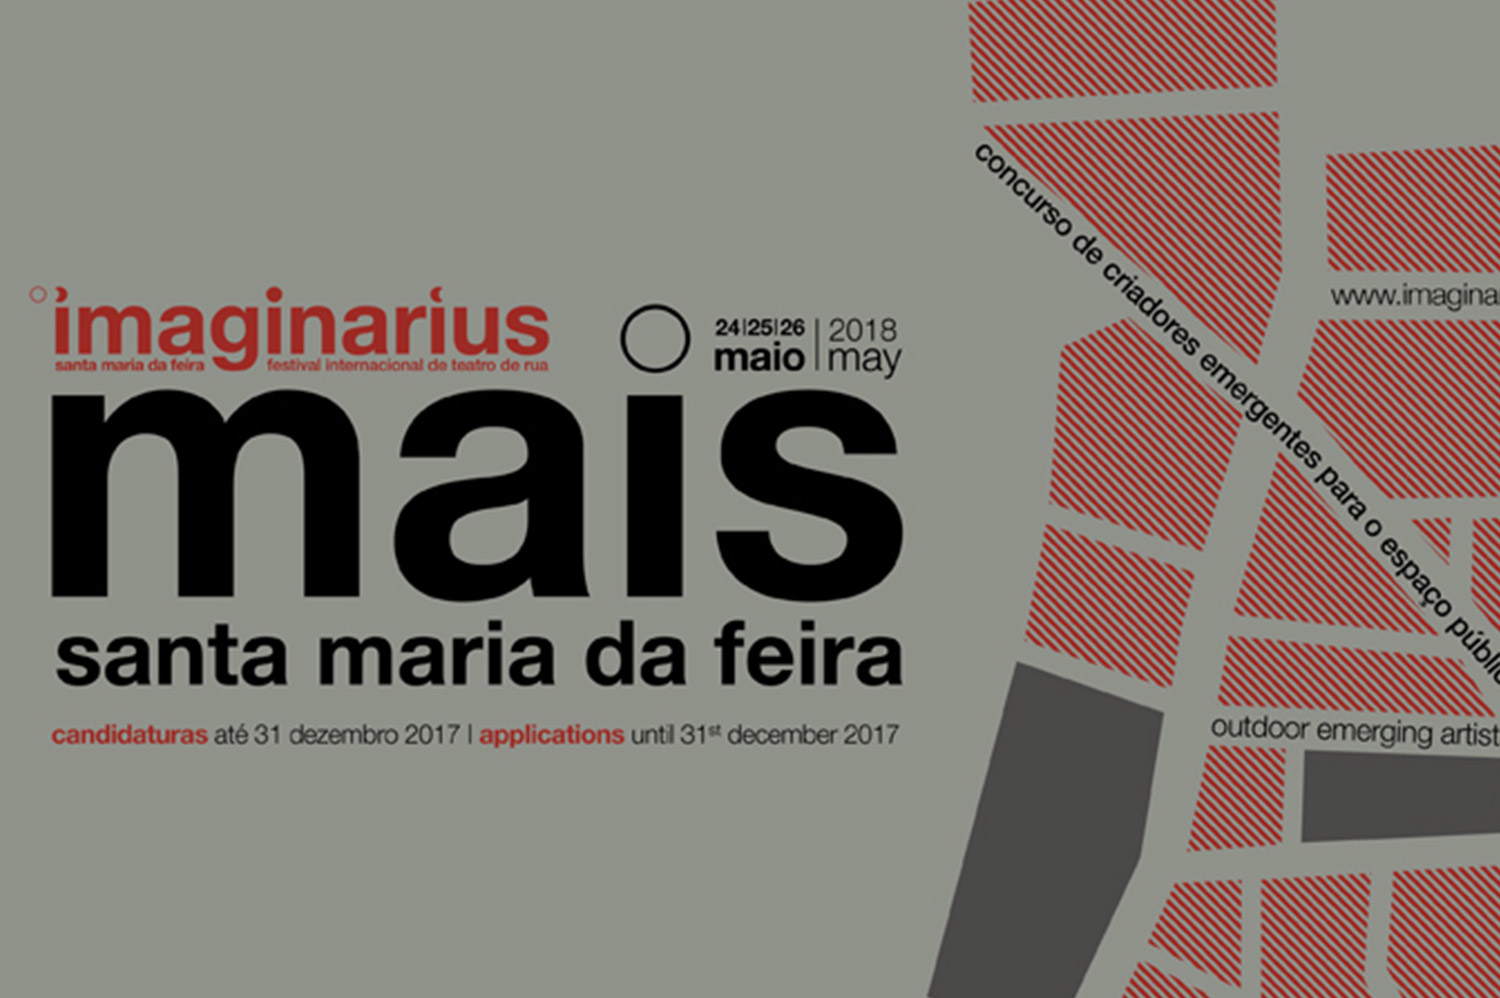 Applications are open to Mais Imaginarius 2018 1